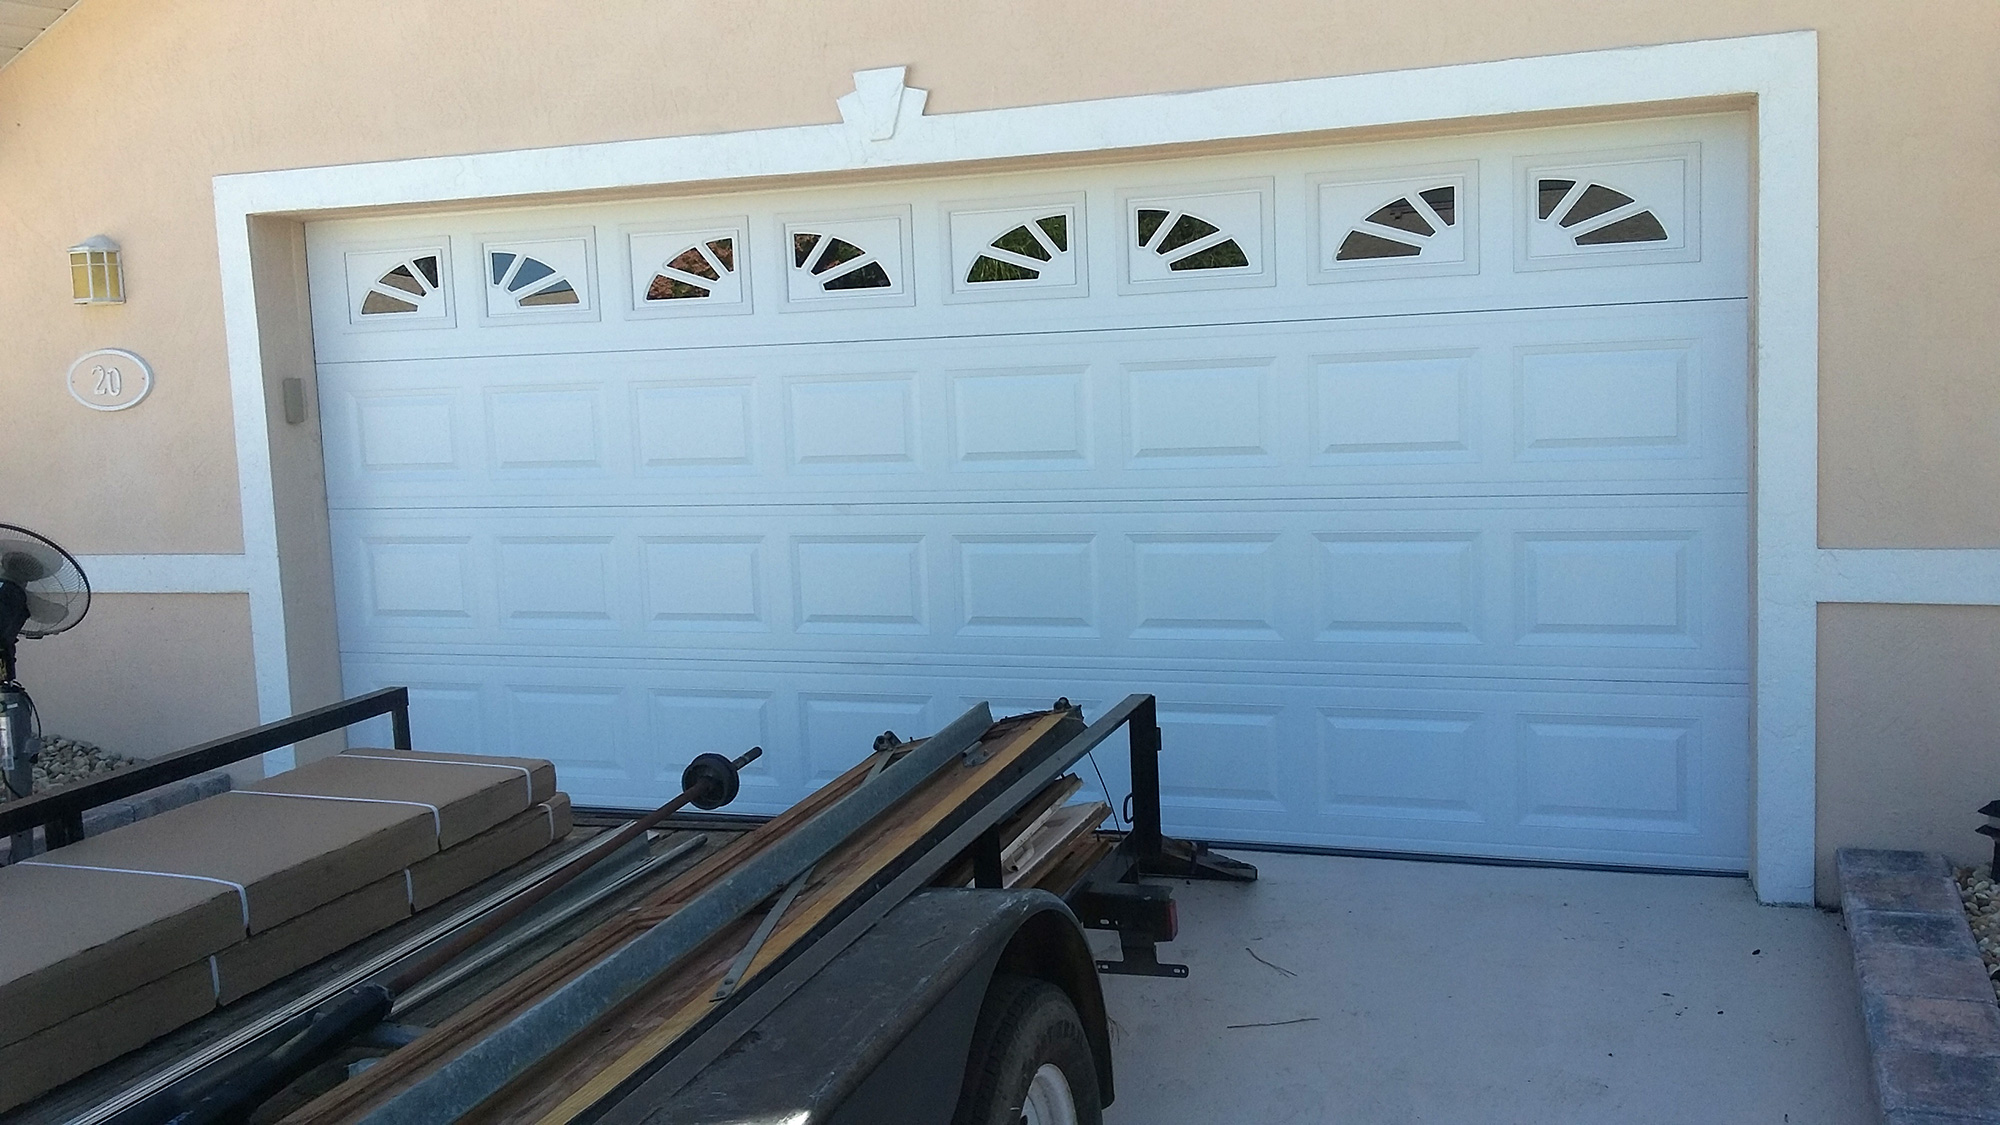 A1 Garage Doors What Are The Different Door Colors Tips Desain Pintu Garasi Mobil Model